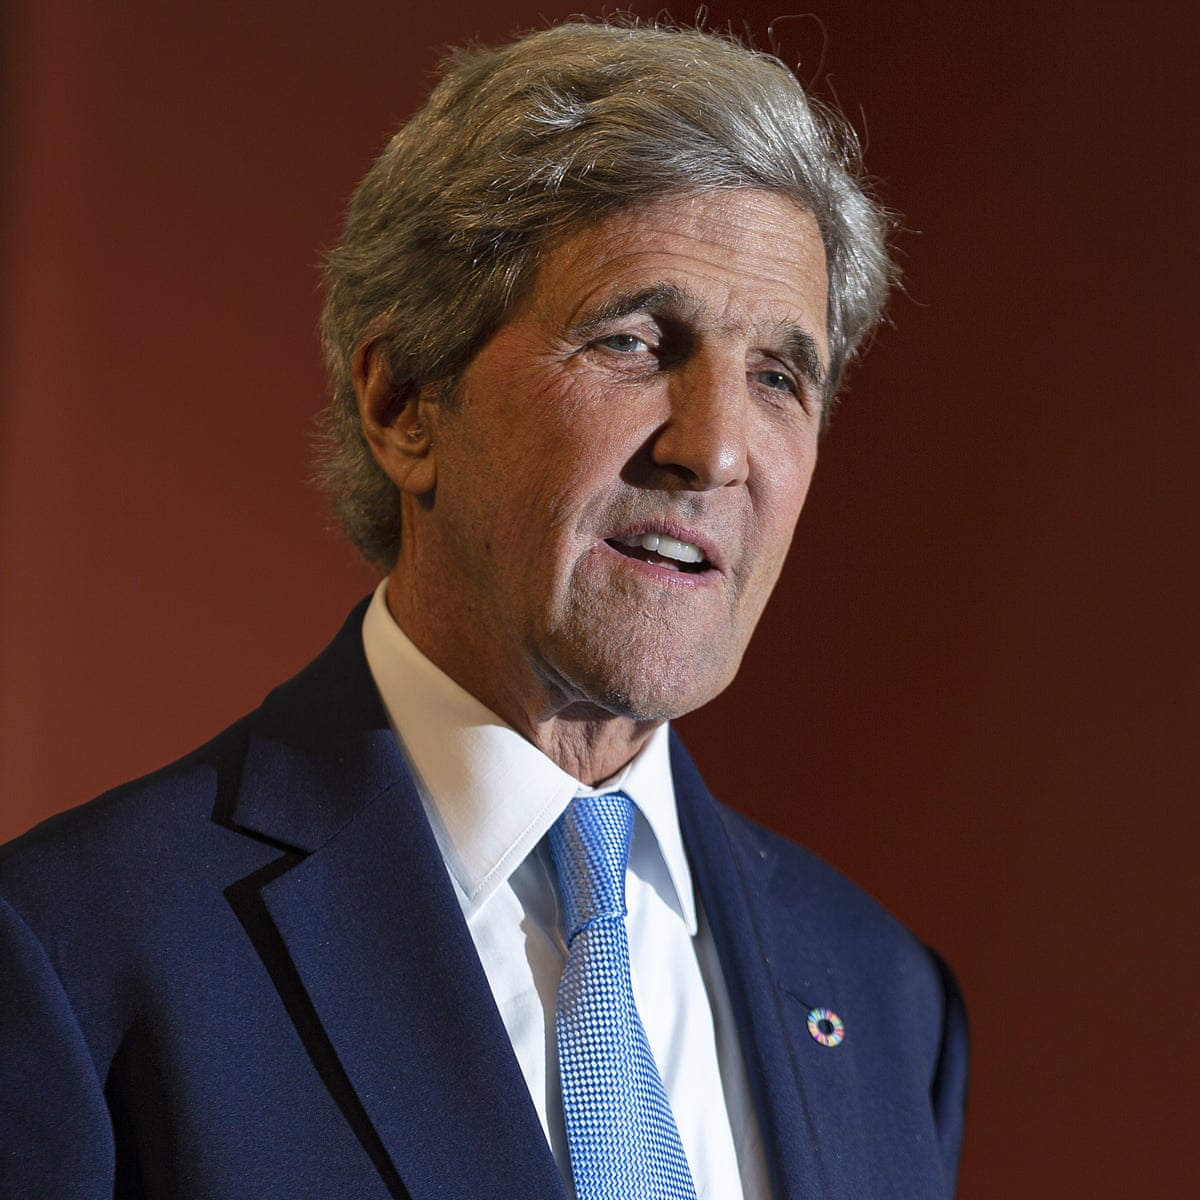 John Kerry launches coalition to fight climate crisis: 'We are way behind' | John Kerry | The Guardian